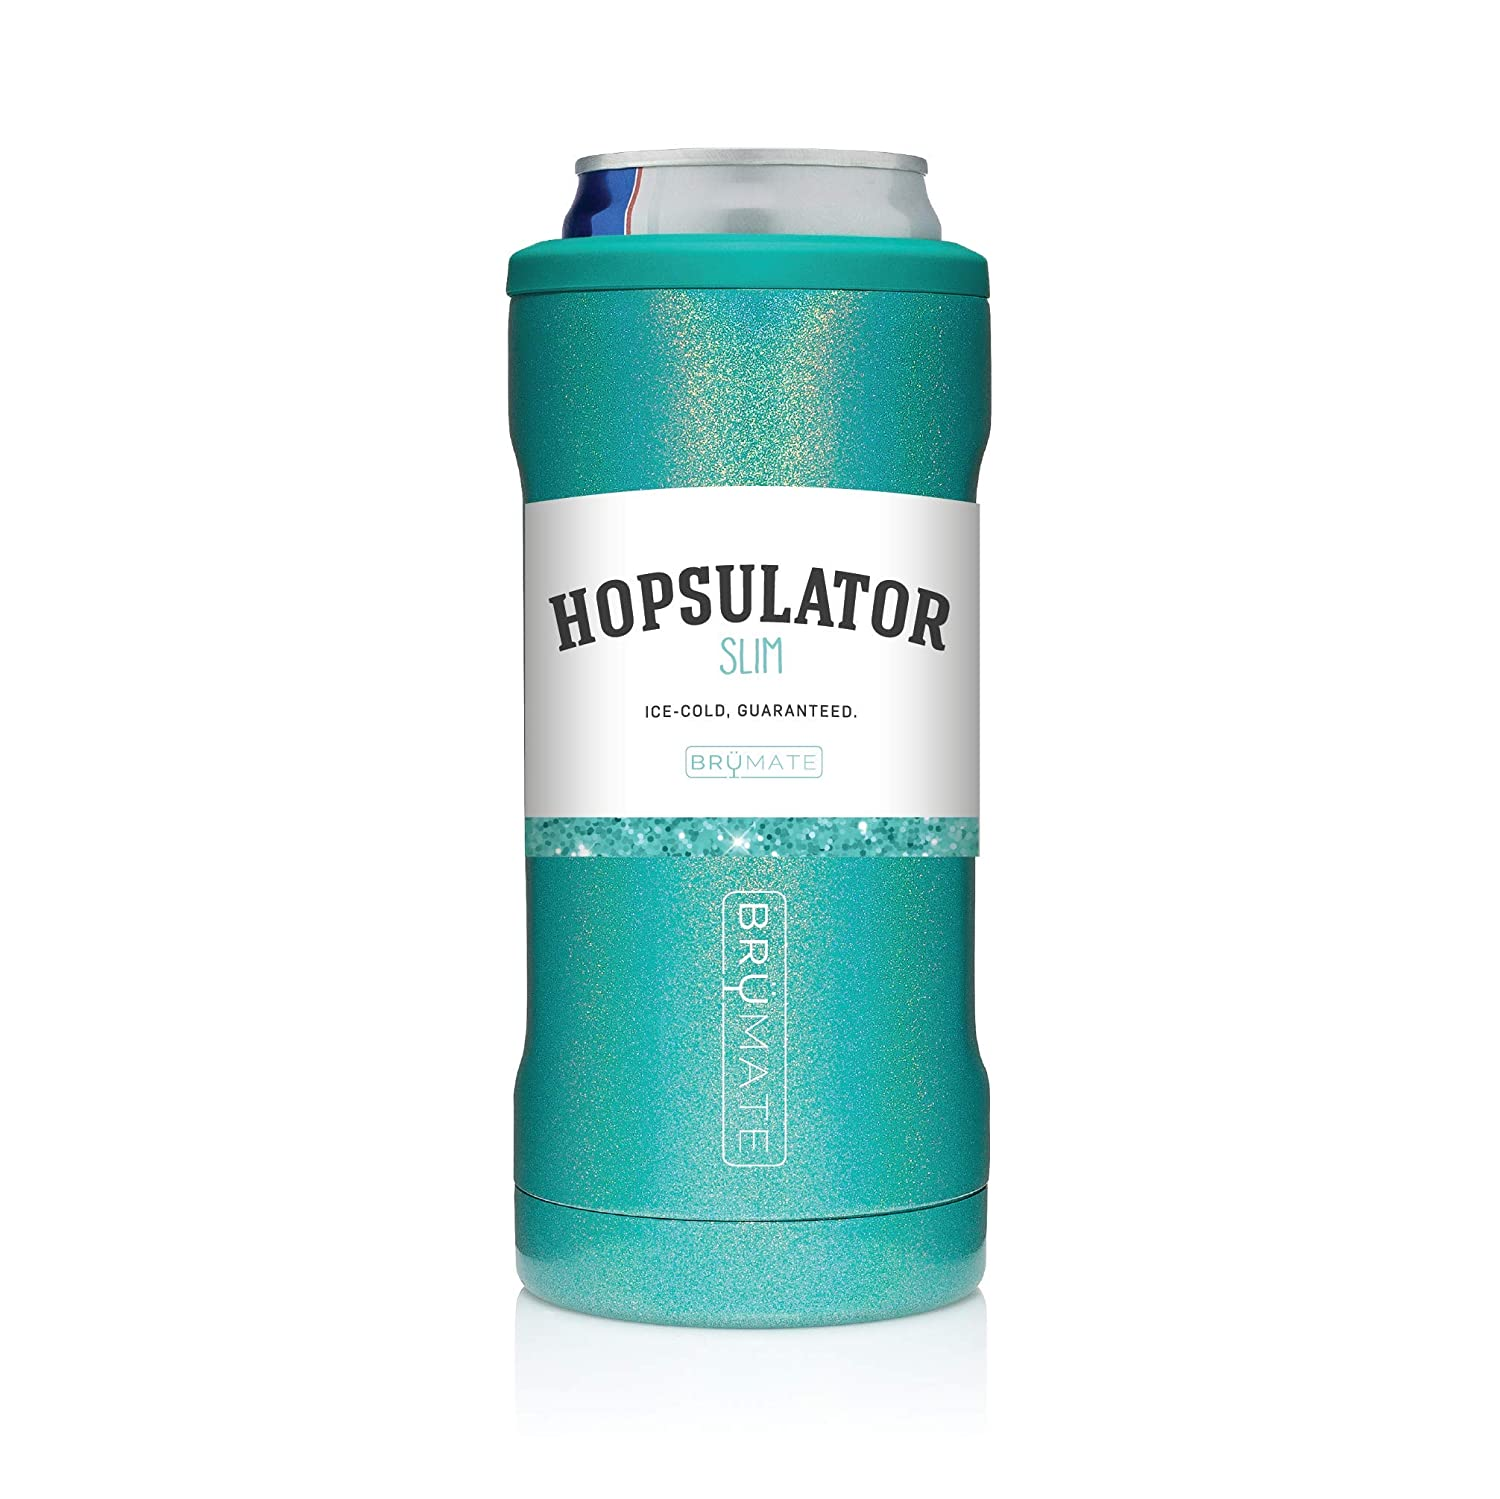 BruMate Hopsulator Slim Insulated Can Cooler for 12oz slim cans (Aqua)